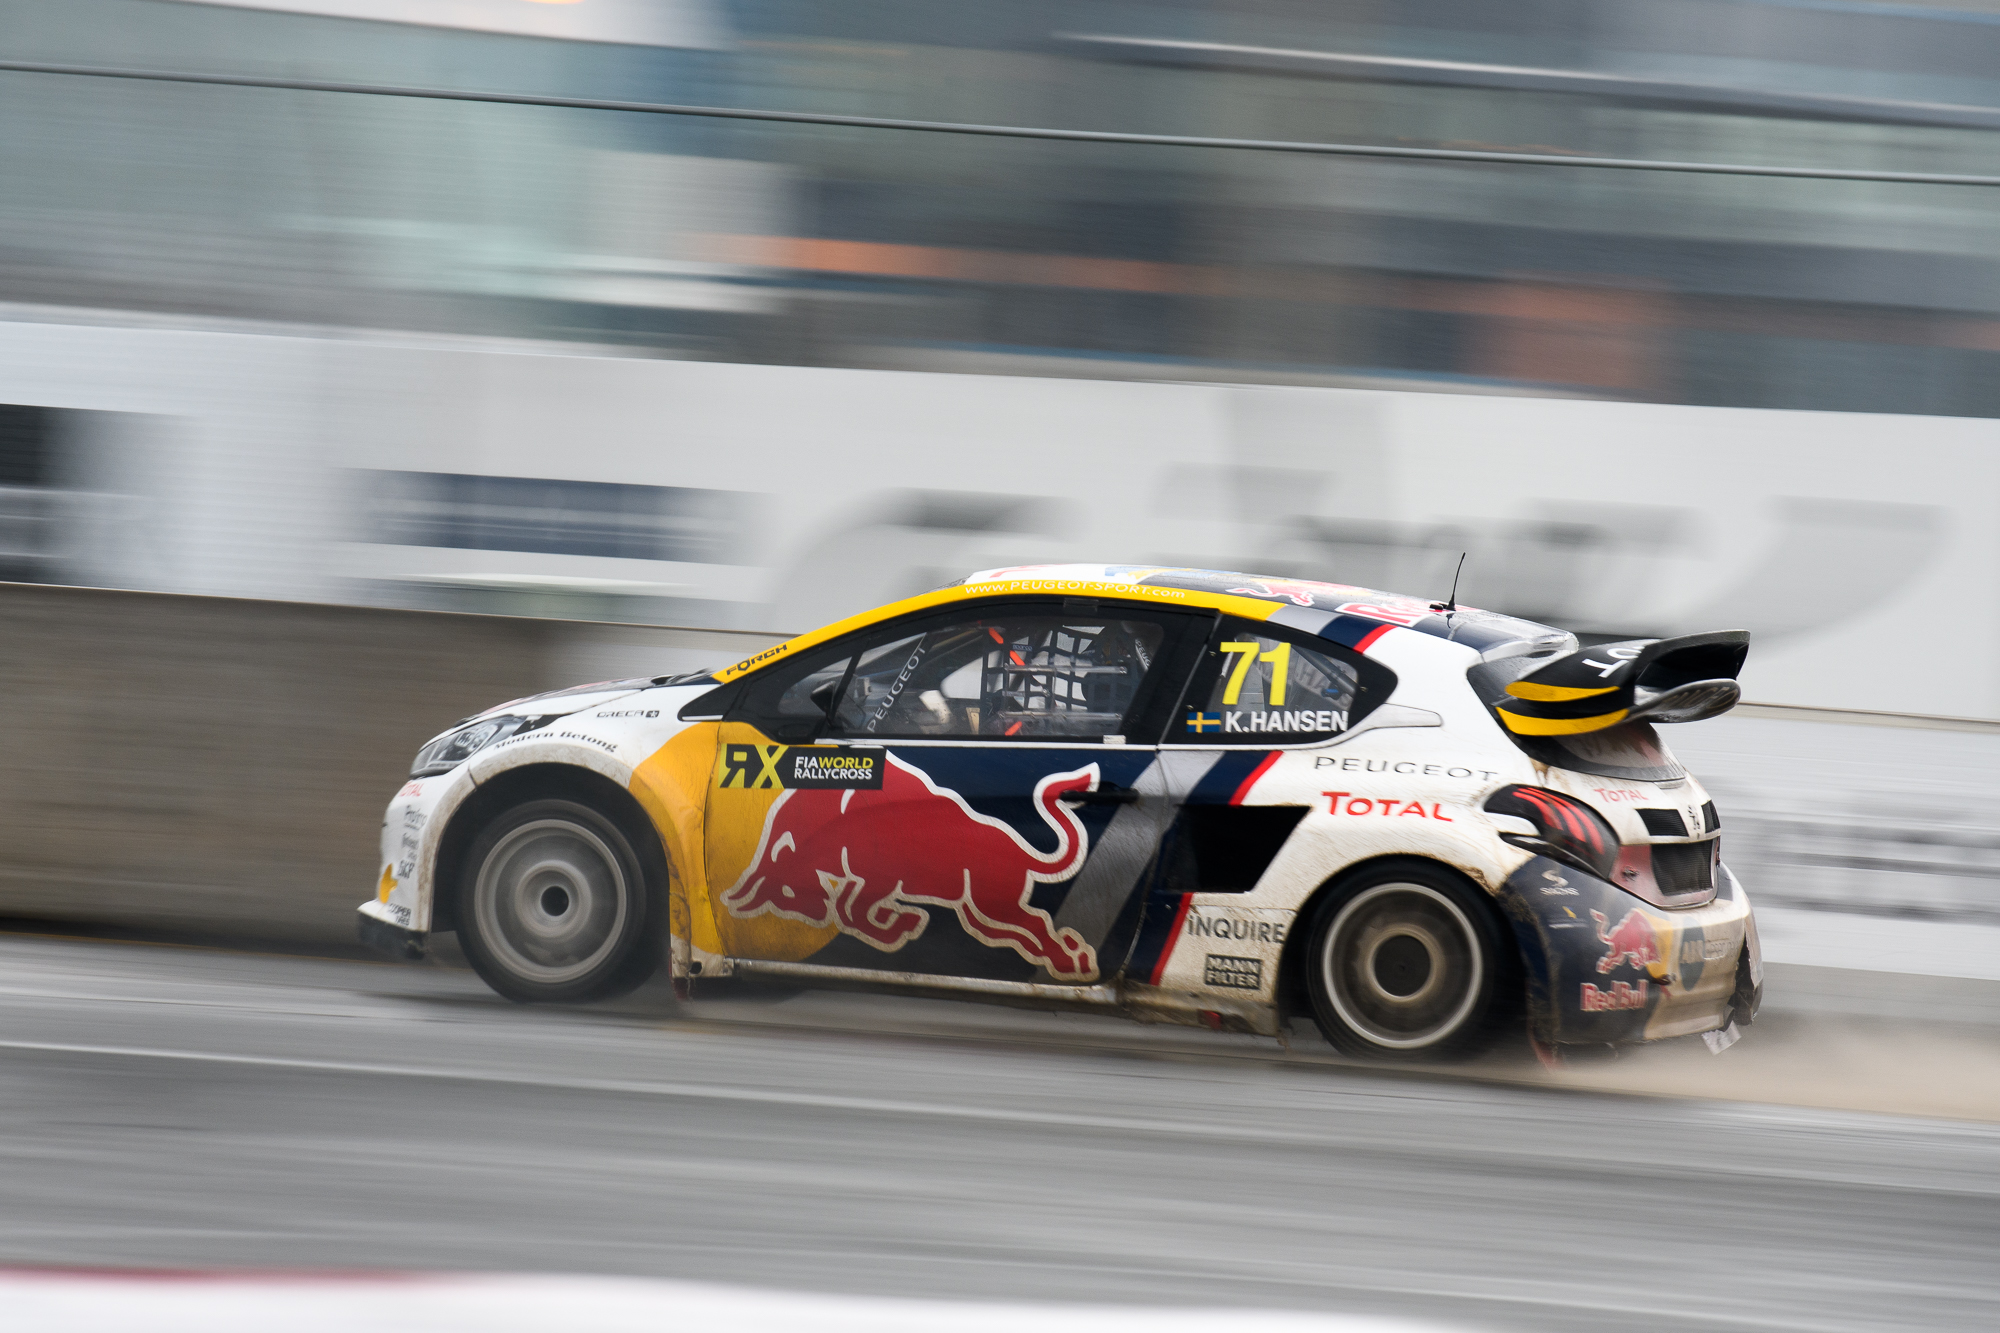 World RX GP3R